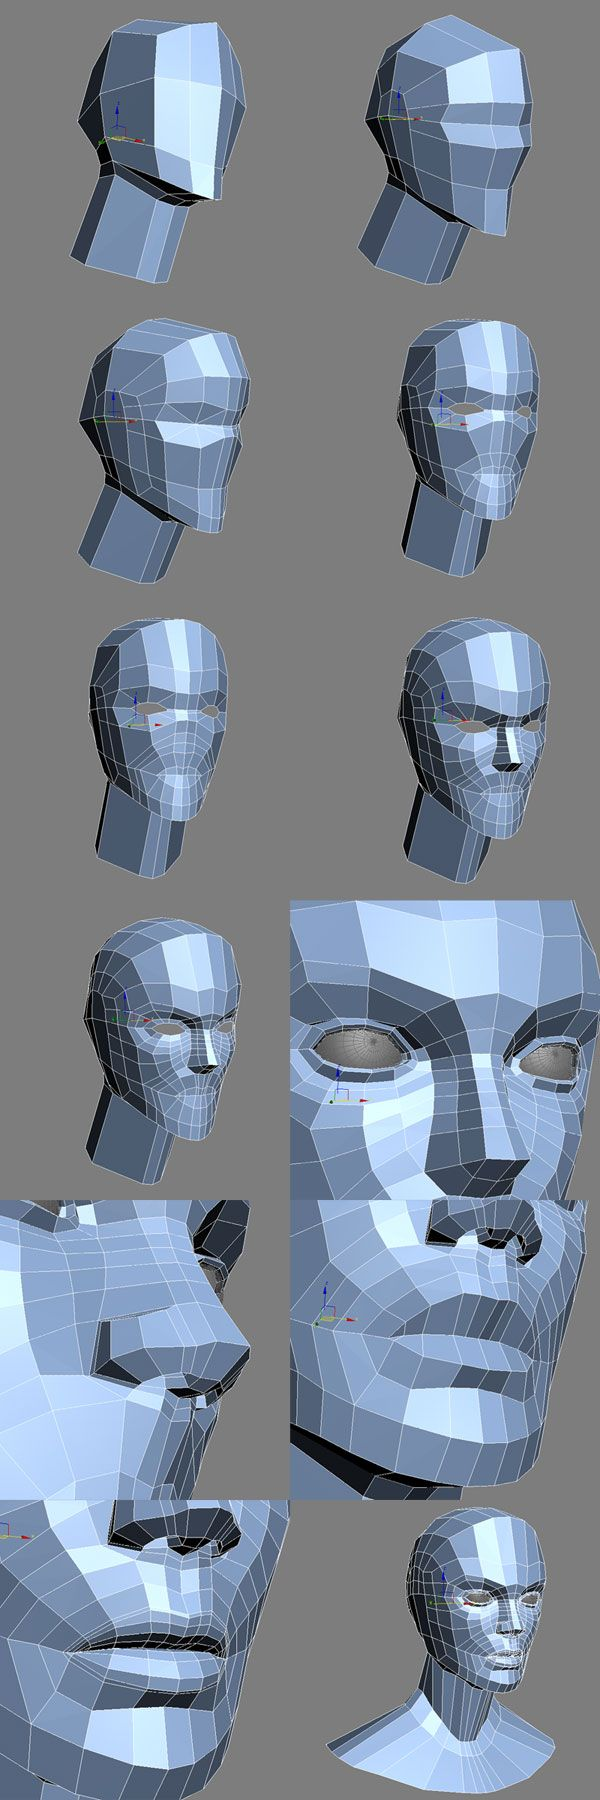 230 best images about 3d topology edge flow on pinterest for 3ds max face modeling